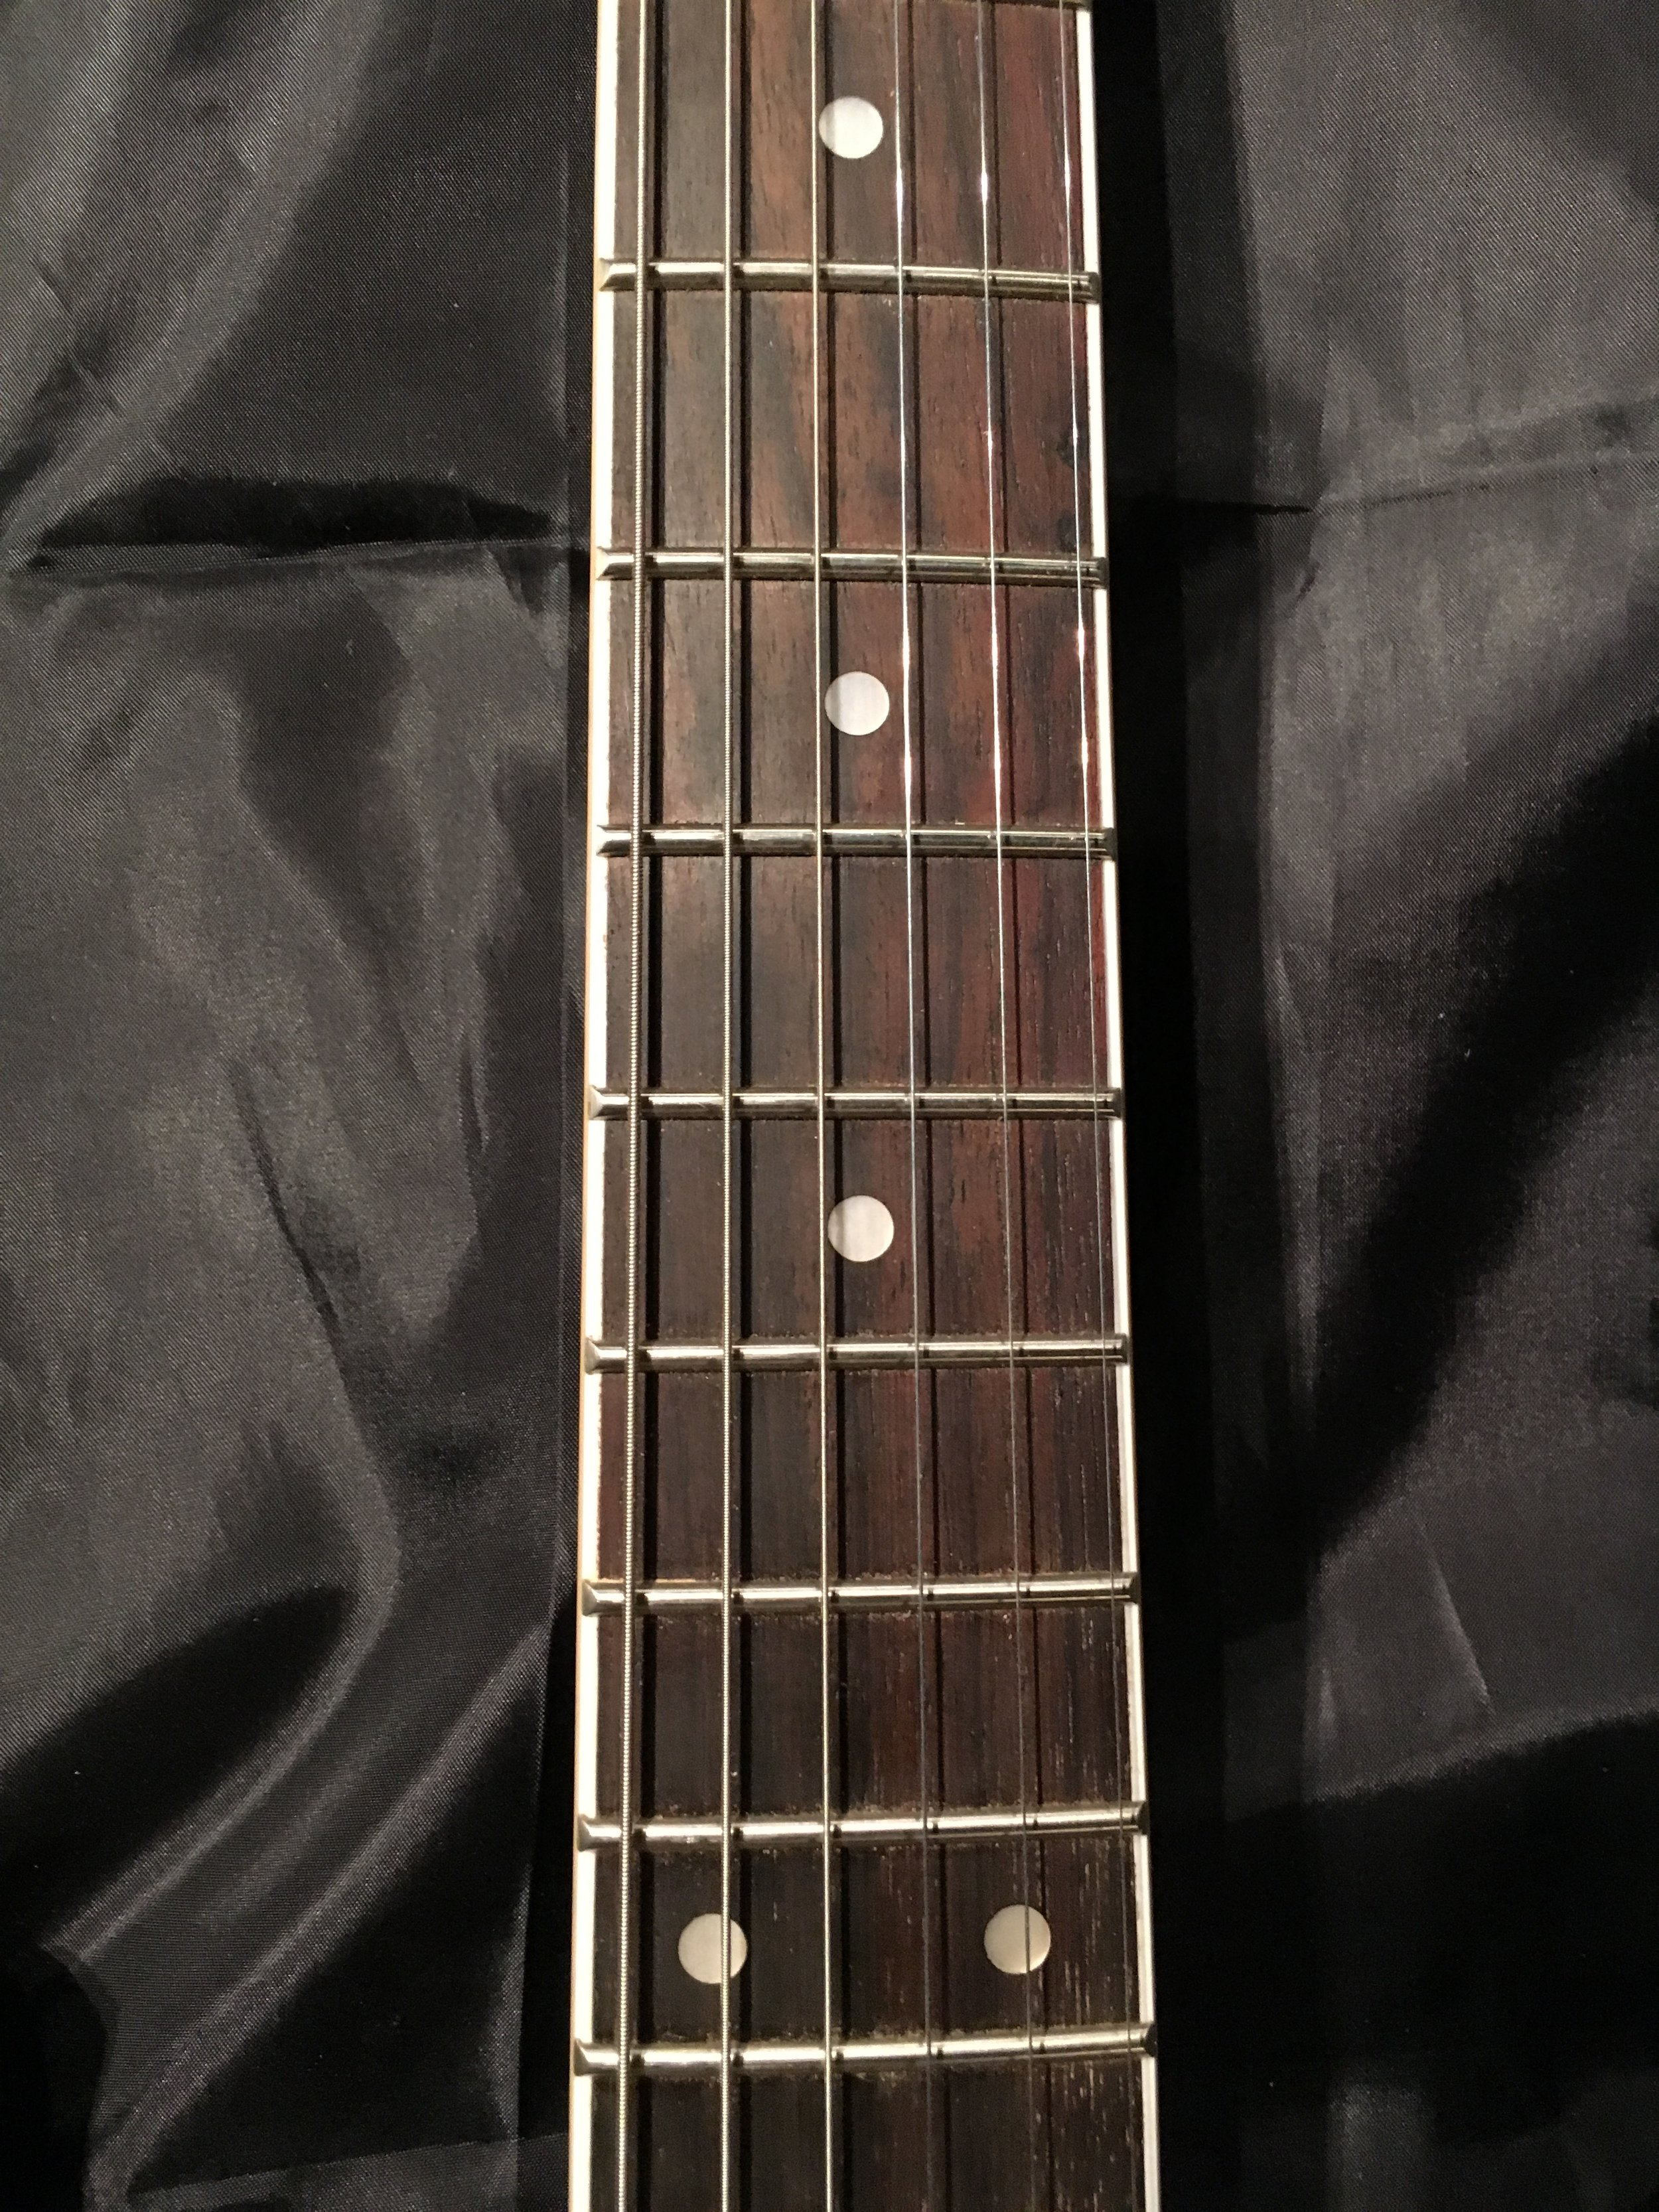 Rosewood fingerboard with binding on the edges.  Jumbo frets.